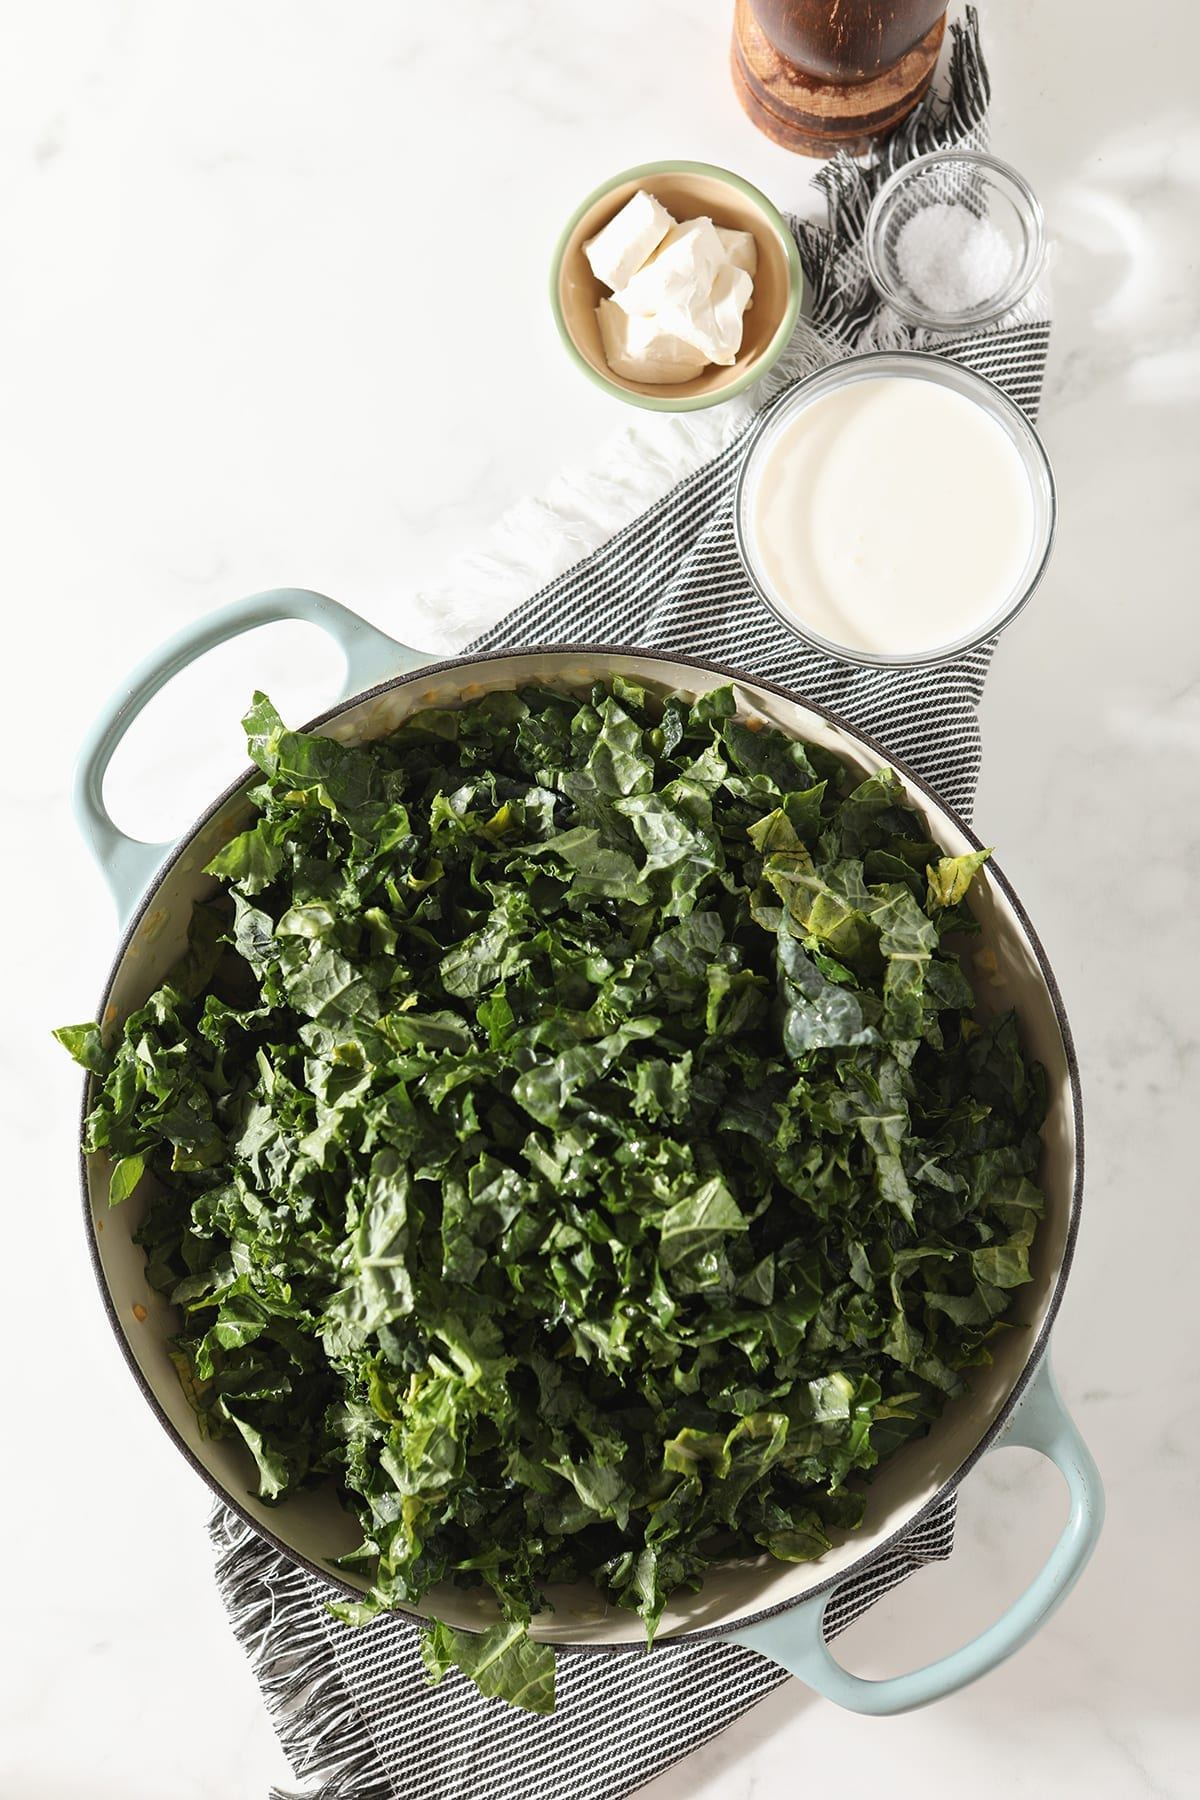 Chopped kale in a braiser pan on a gray striped towel next to cream cheese, cream, salt and pepper